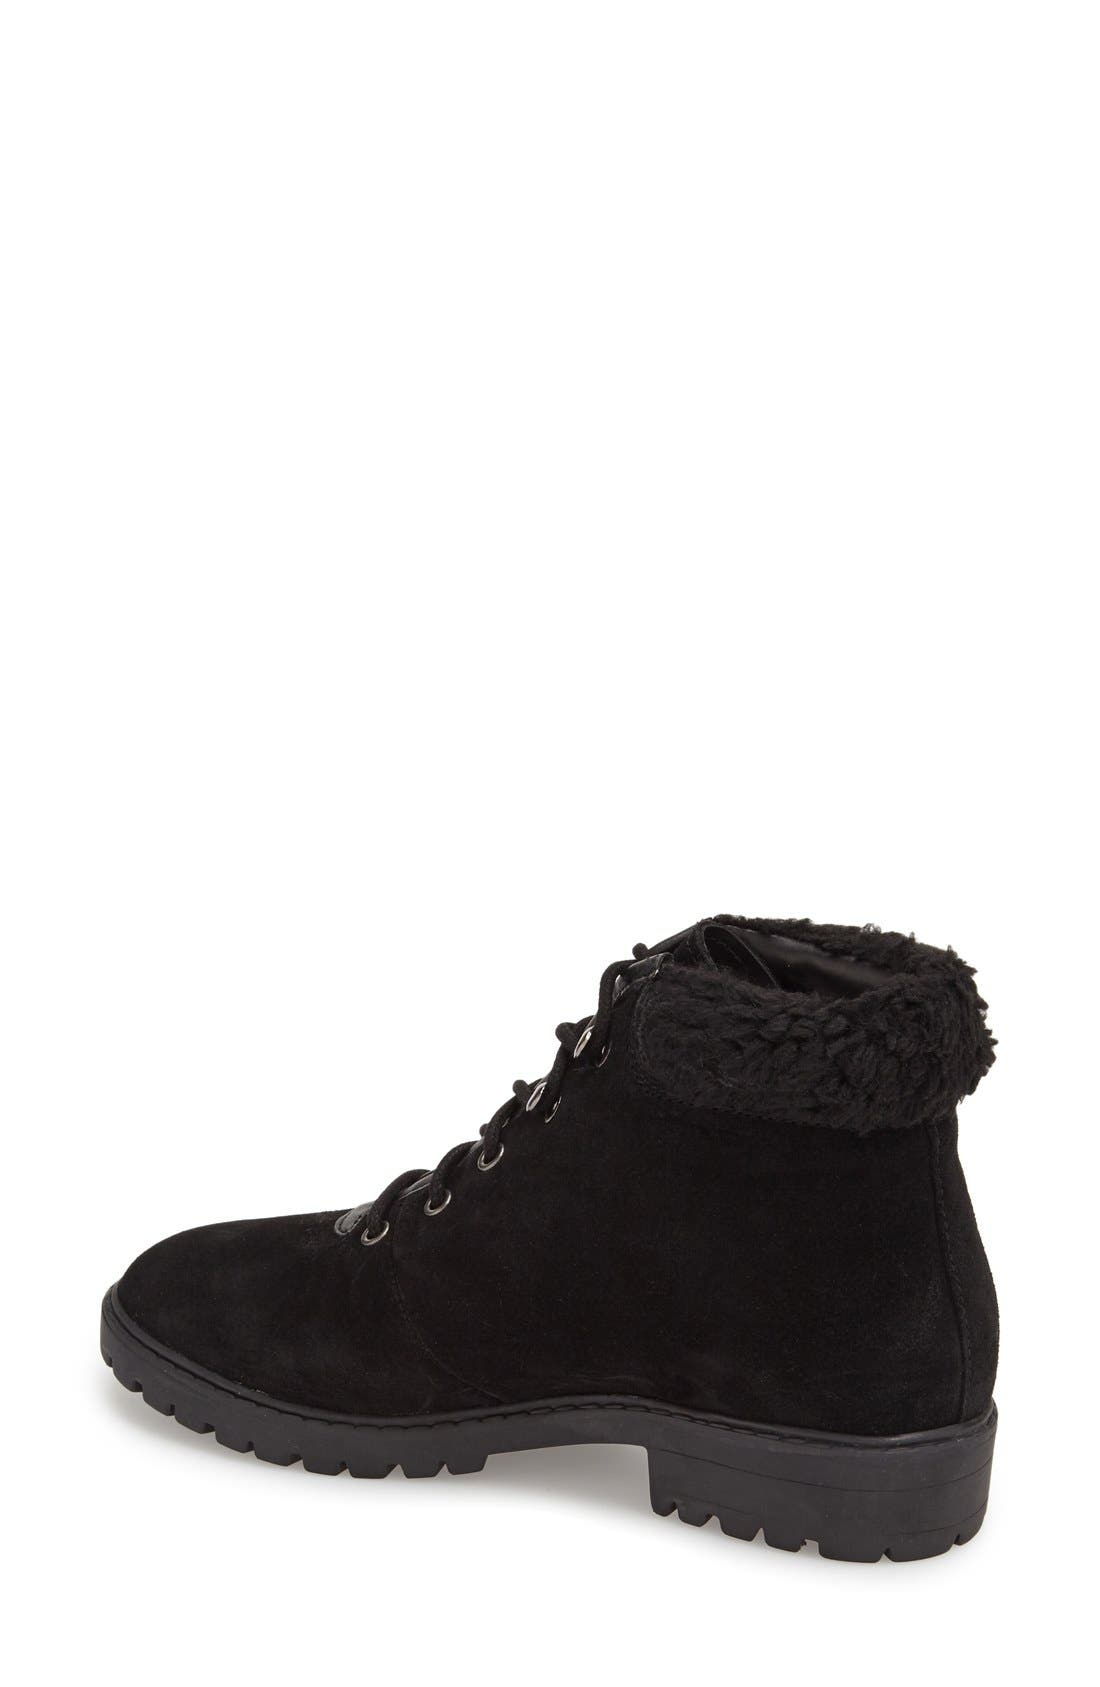 Alternate Image 2  - Topshop 'Birdy' Lace-Up Boot (Women)